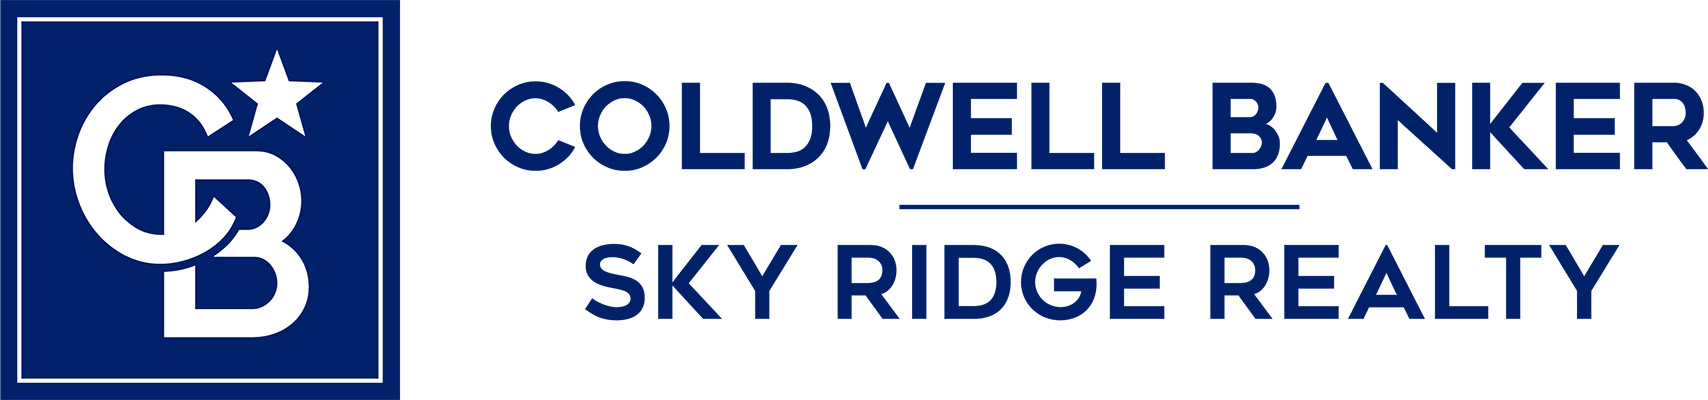 James Newcomb - Coldwell Banker Sky Ridge Realty